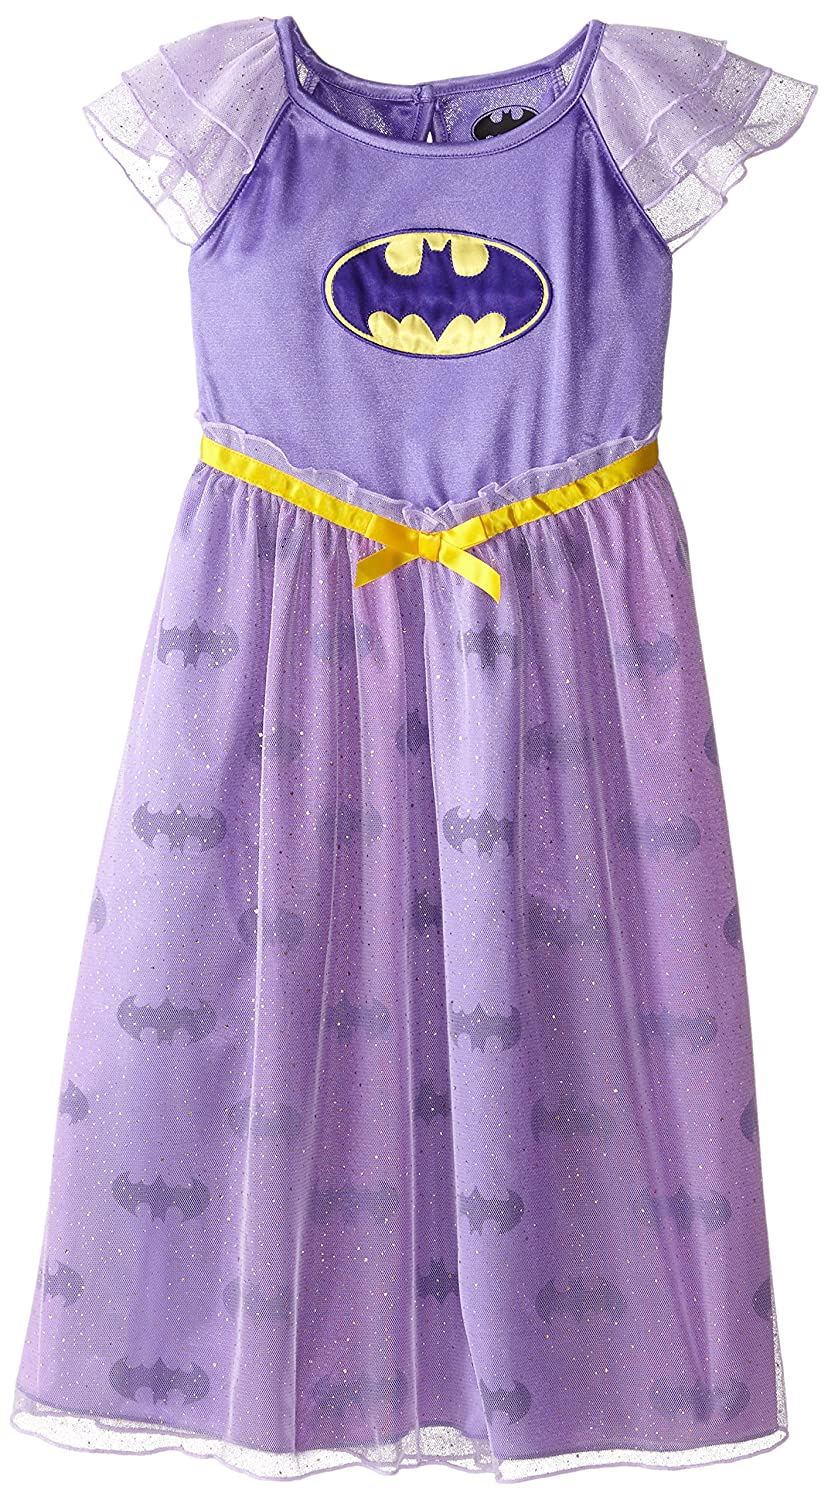 Justice League Girls Batdressy Gown Purple Medium K157951SG